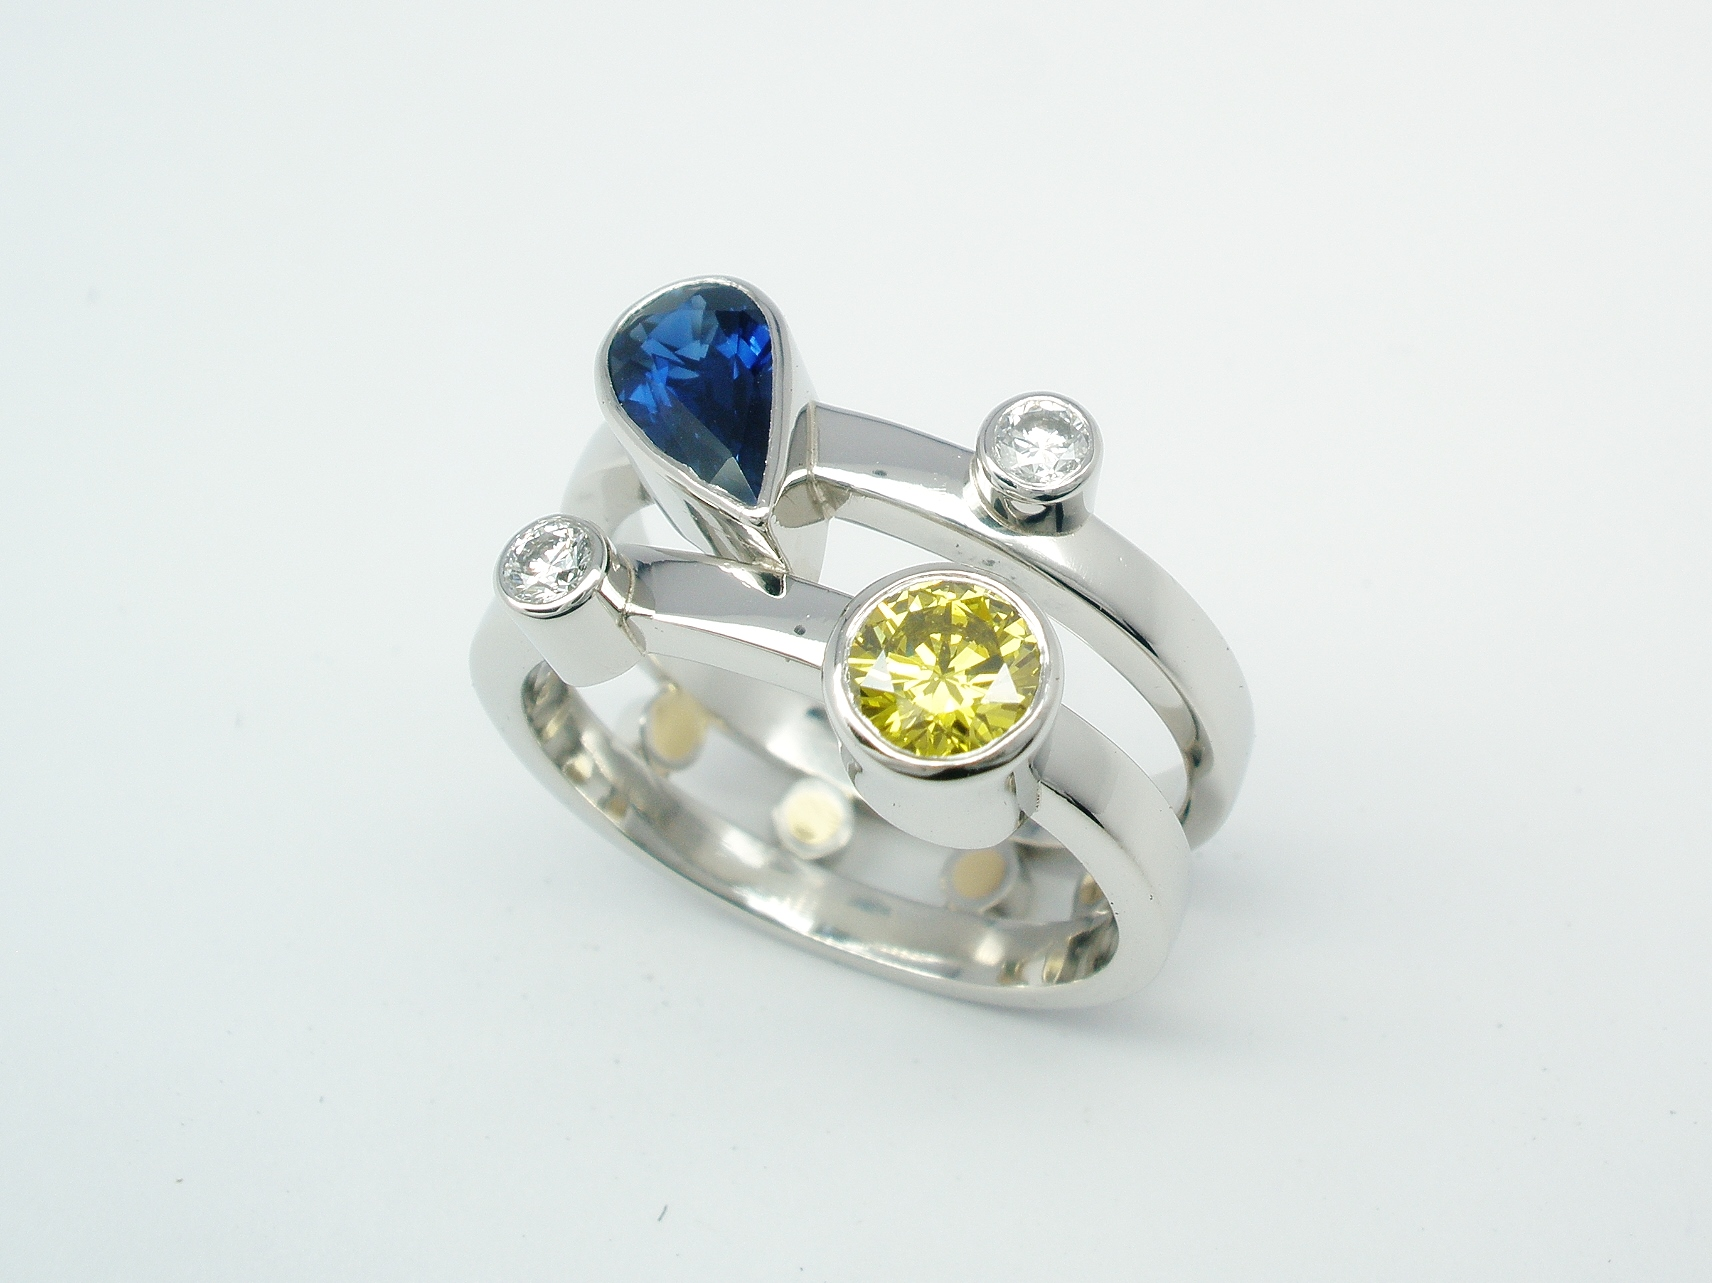 A platinum 4 stone pear sapphire, canary yellow & white round brilliant cut diamond twin parallel banded ring.